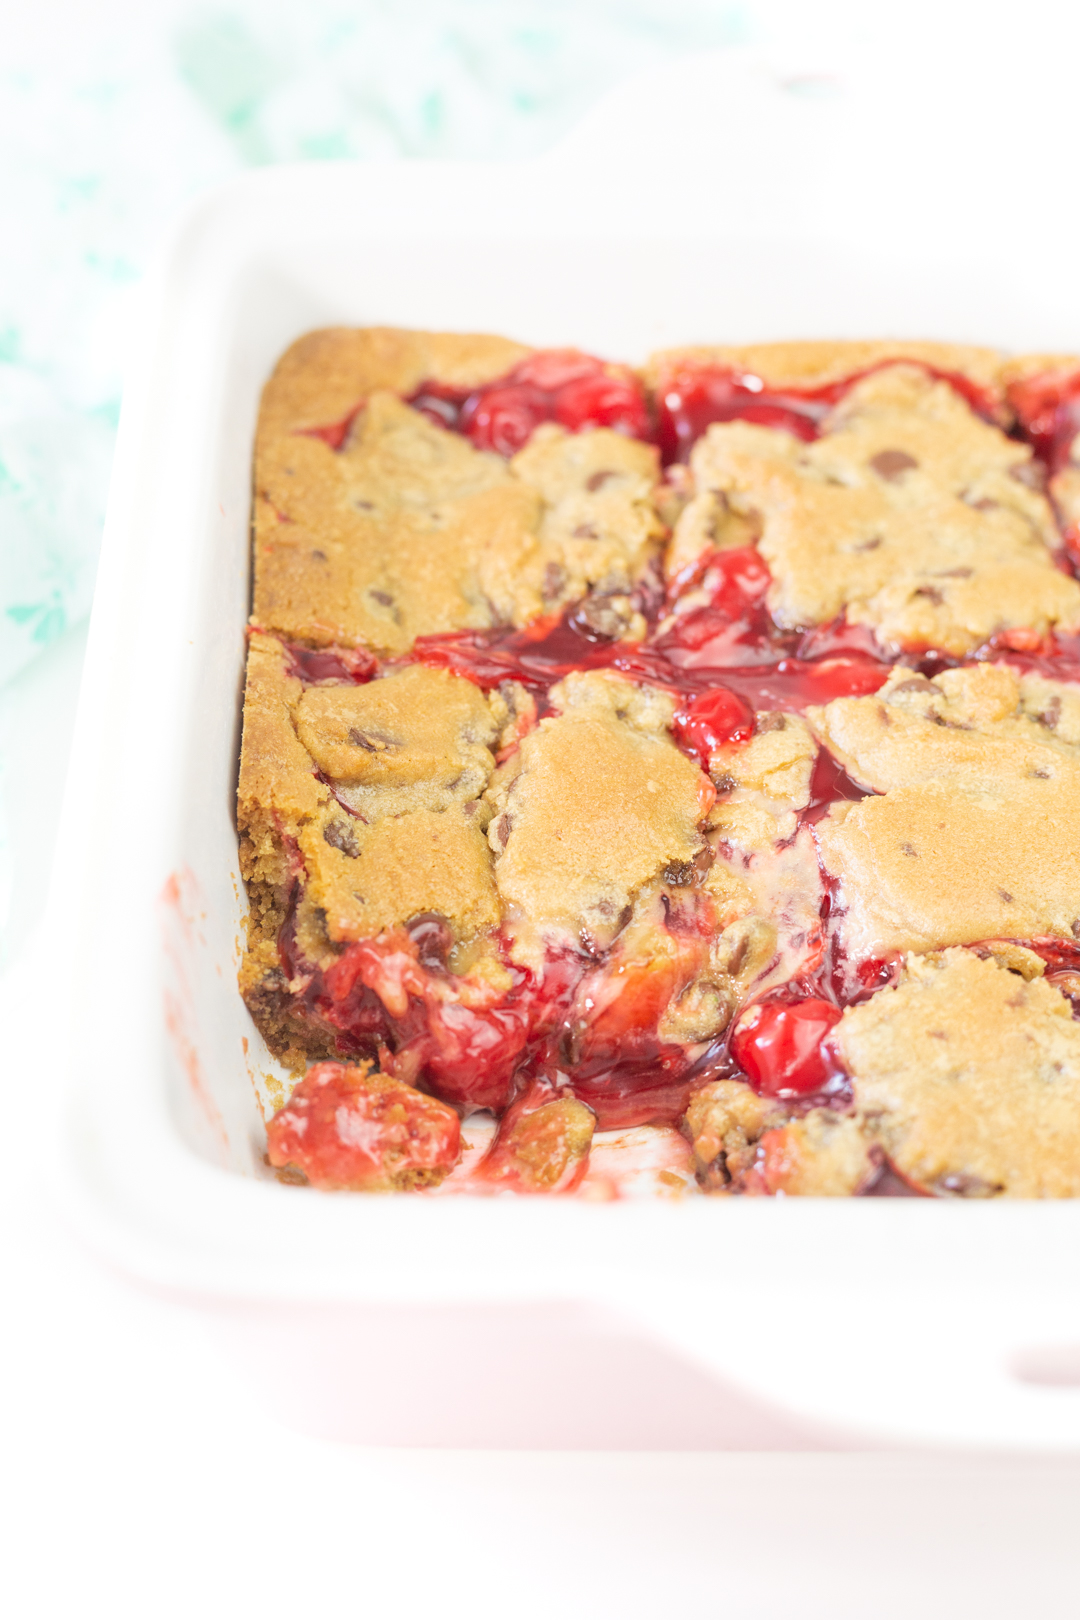 chocolate chip cherry bars up close with oozy cherry filling